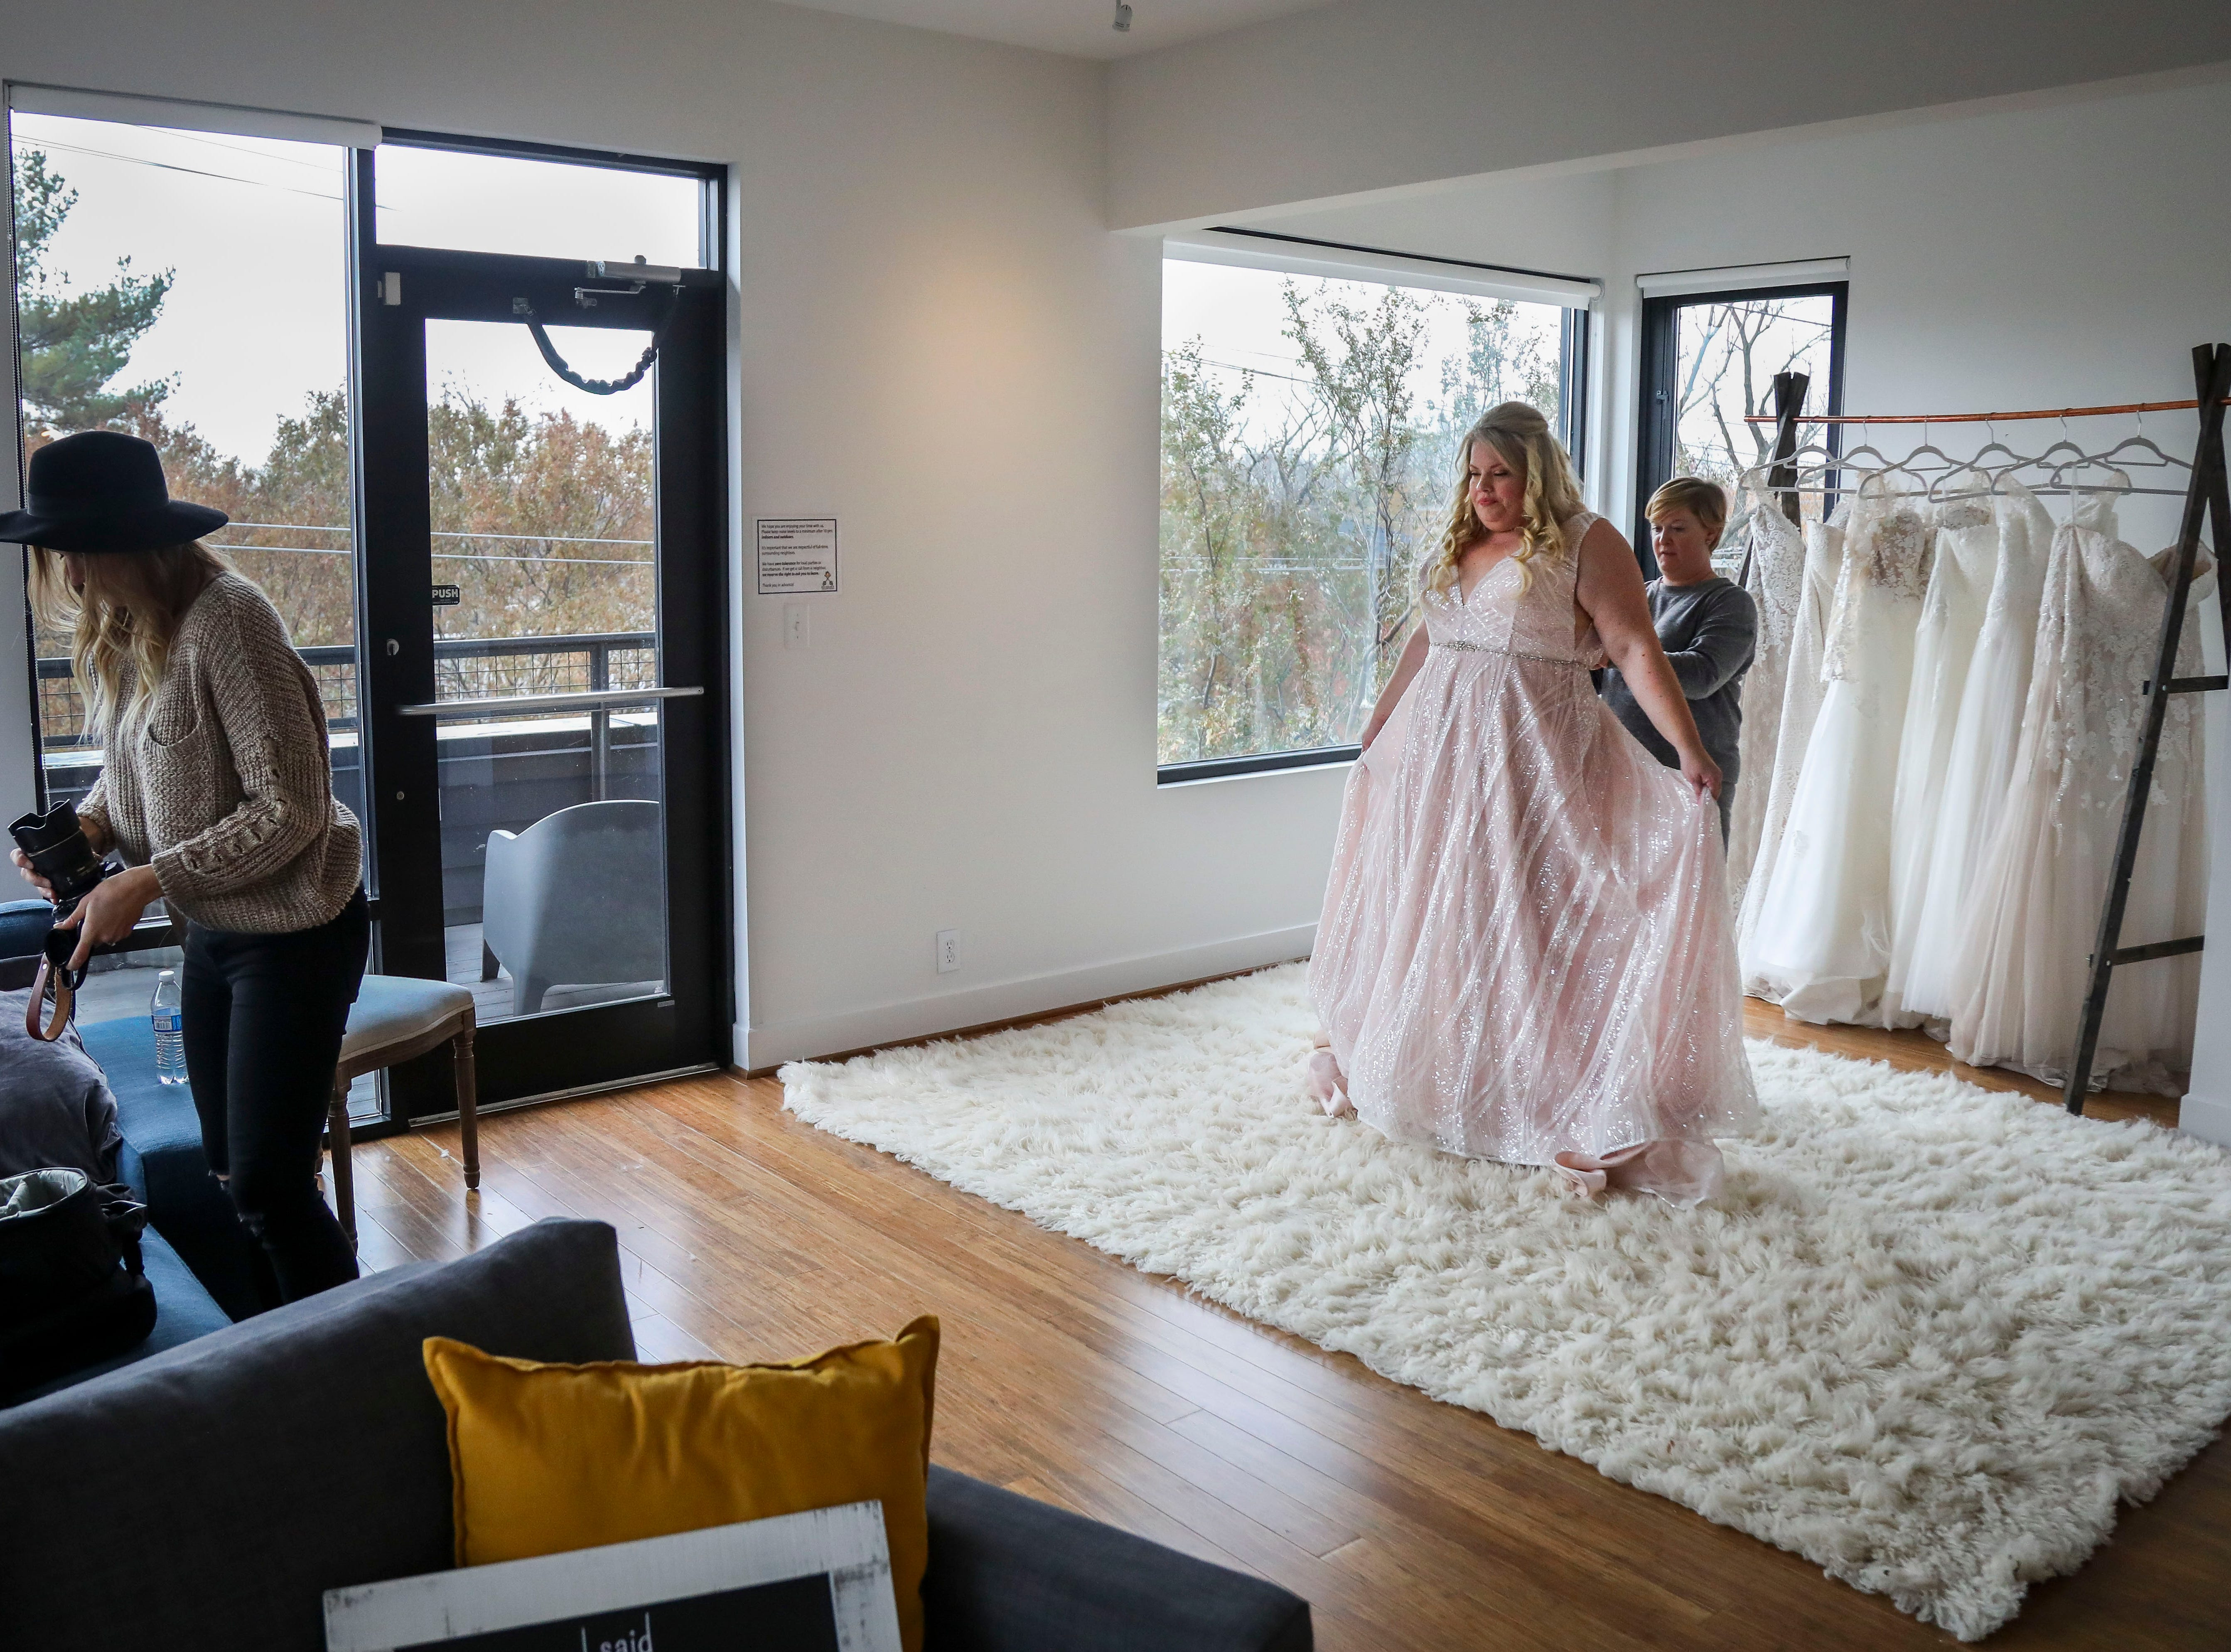 Co-owner of Couture Closet Bridal adjusts Misty Hair's dress while photographer Susan Jordan of Love Hunters switches lenses NuLu in Louisville, Ky. on Monday, November 12, 2018. Plus-sizes make up only 16 percent of all apparel sales, though, 67% of women in the United States wear a size 14 or above. 